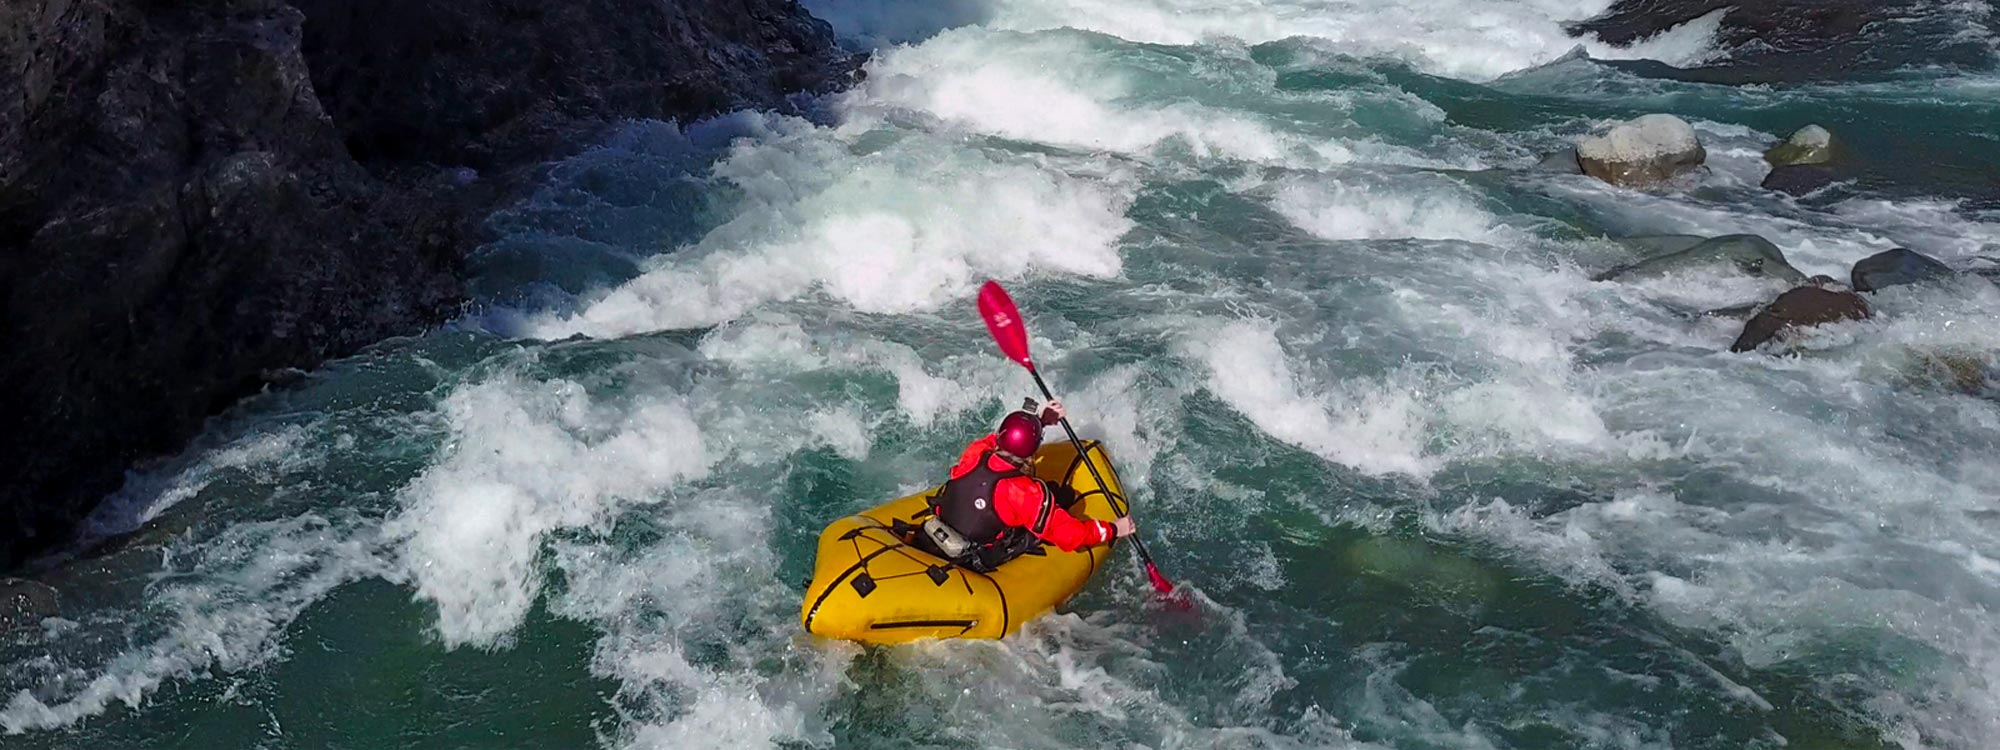 Whitewater Kayaking and Rafting in New Zealand South Island